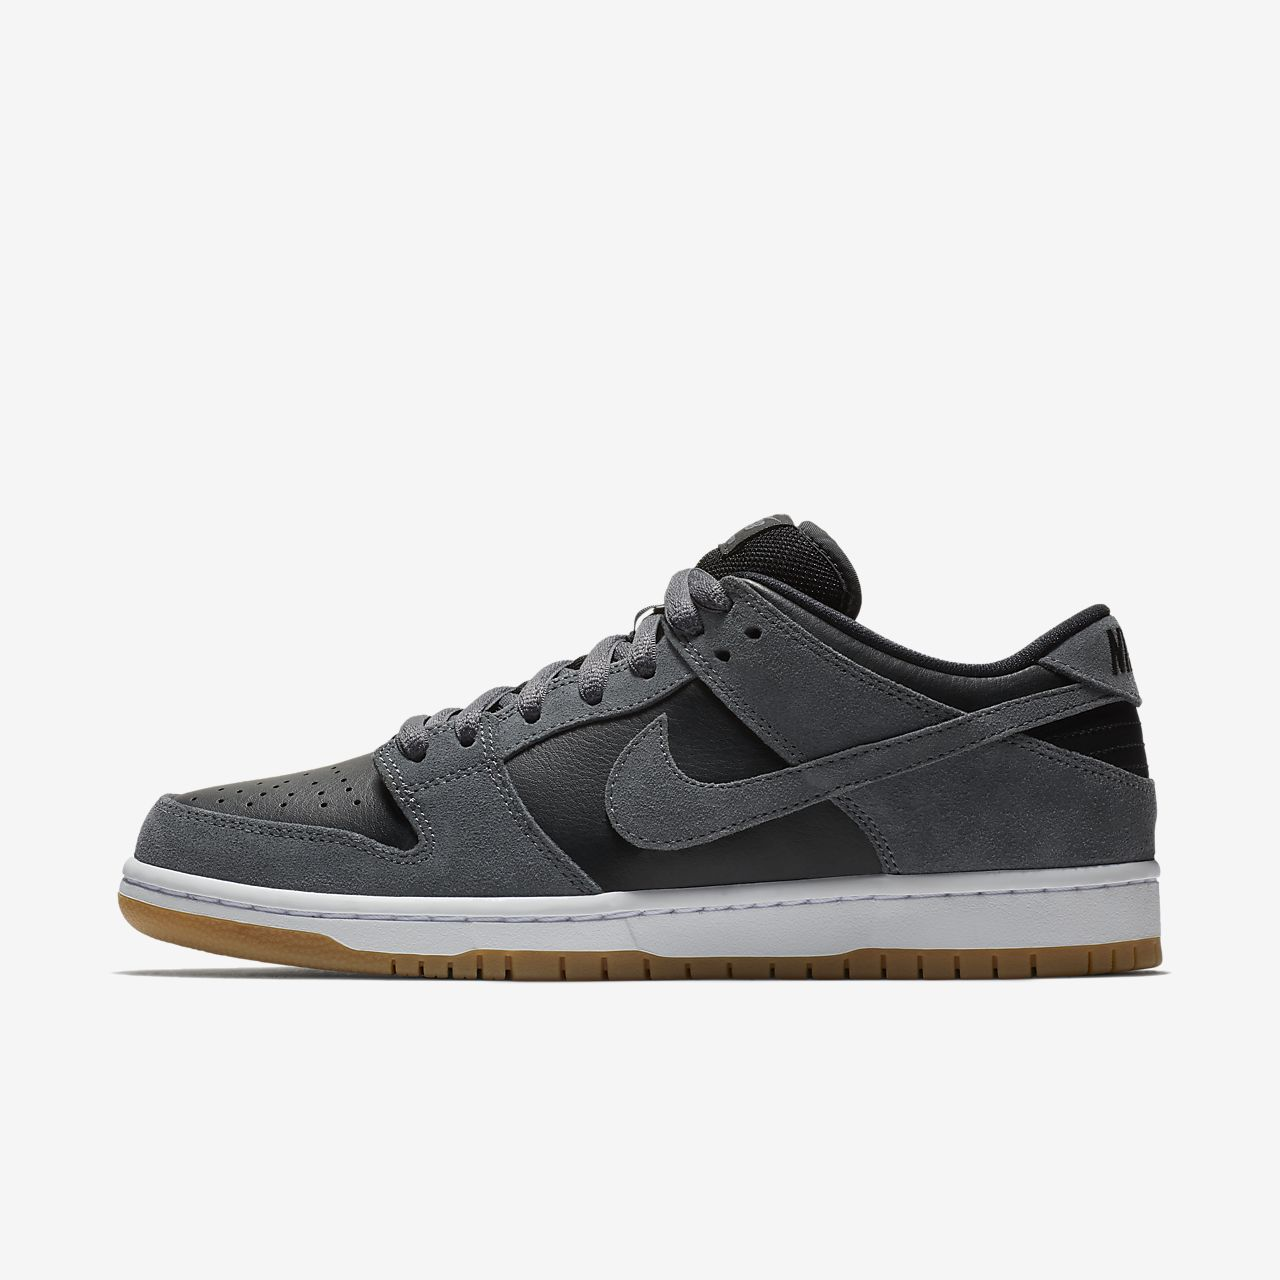 los angeles e1790 6e5d3 Nike SB Dunk Low TRD Men's Skateboarding Shoe